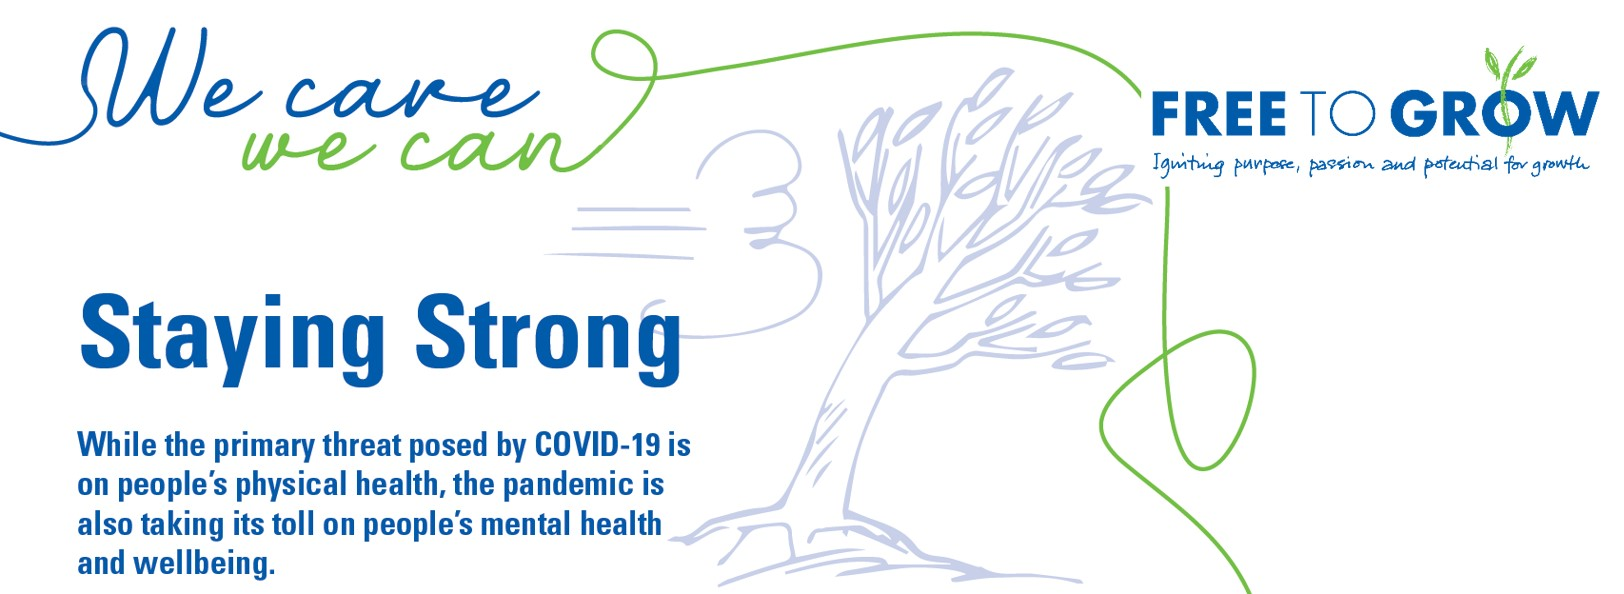 COVID-19, Free To Grow, We Care We Can, building resilience, FTG,